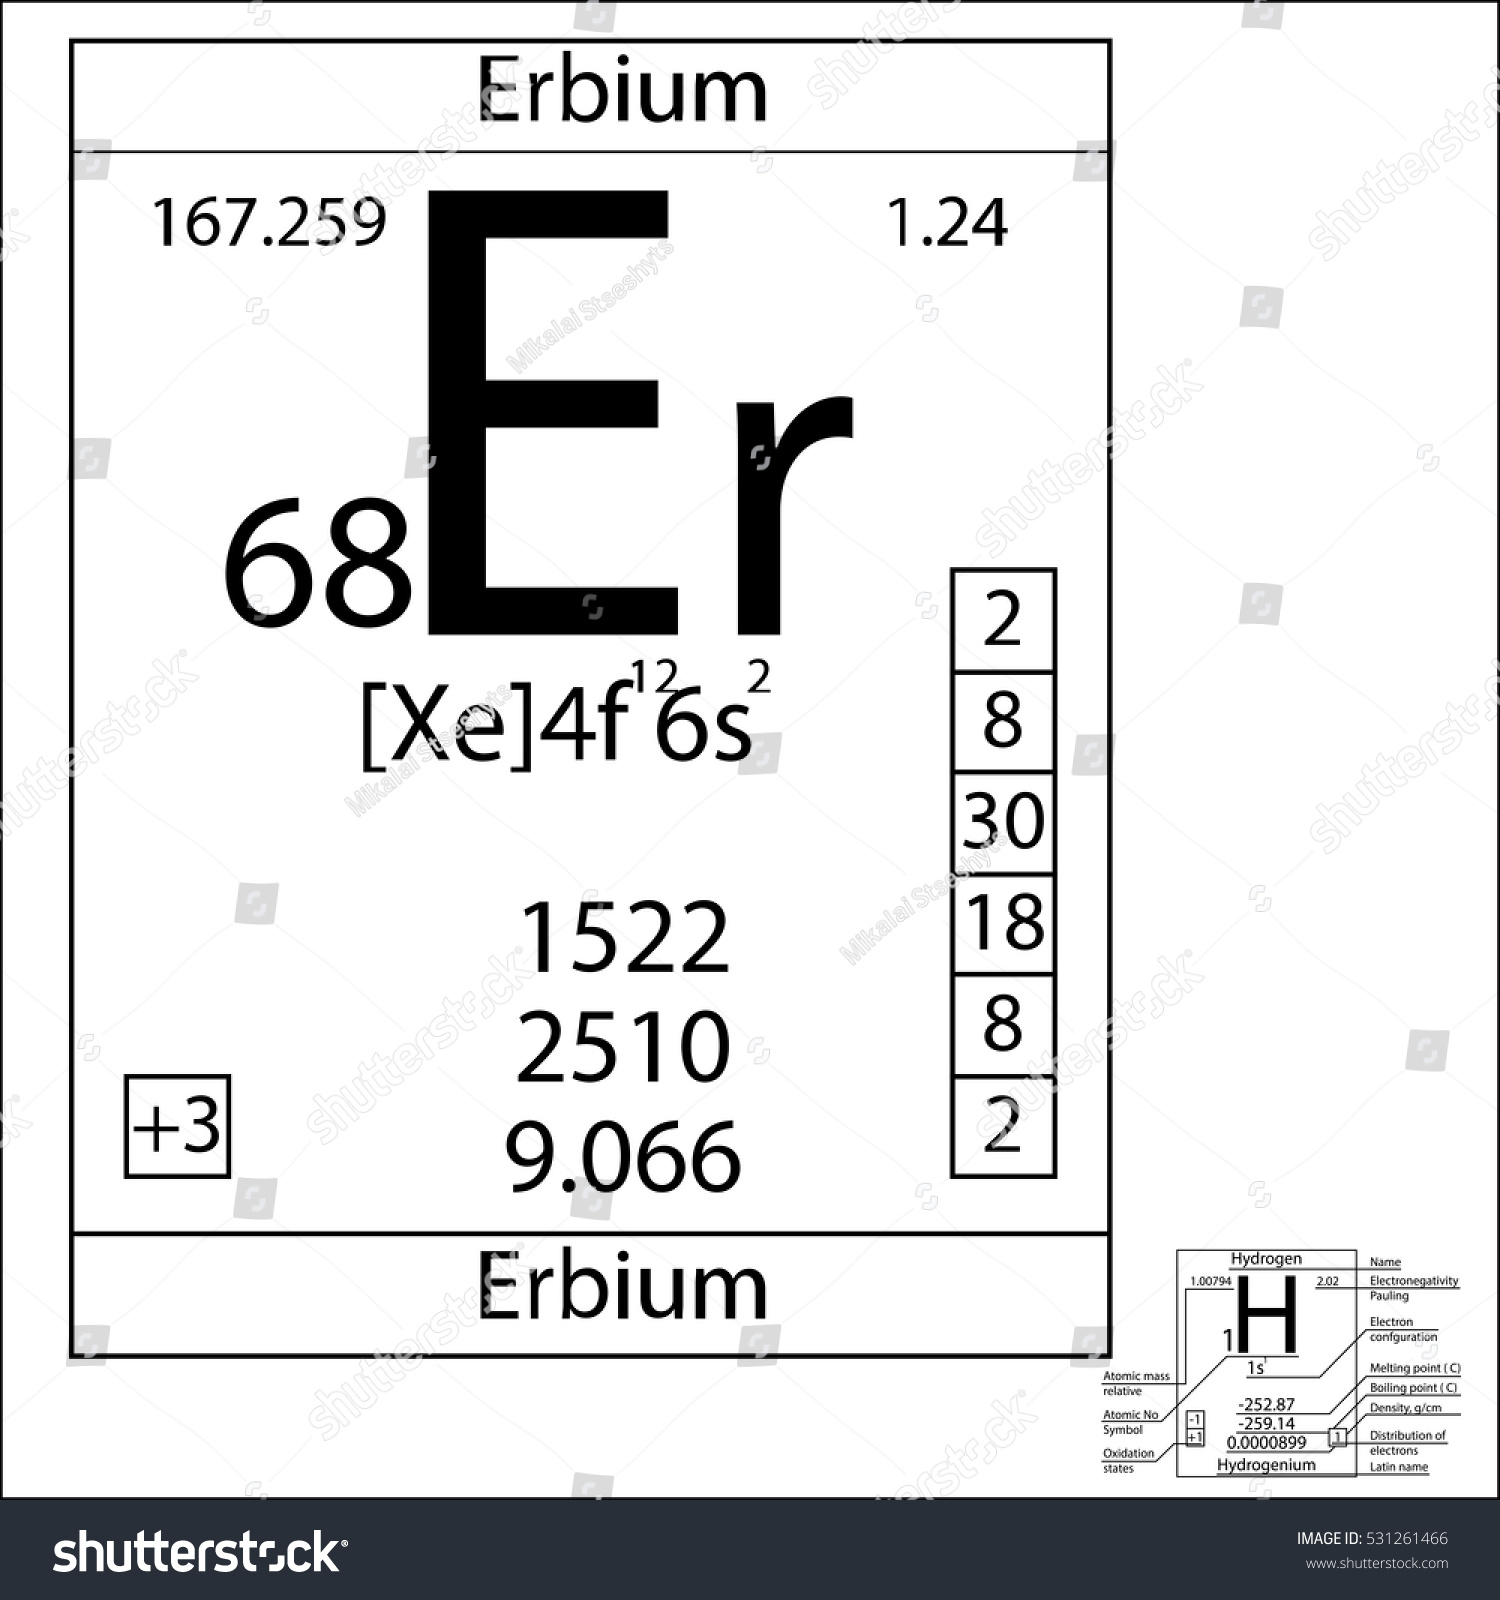 Periodic table erbium choice image periodic table images periodic table element erbium basic properties stock vector the periodic table element erbium with the basic gamestrikefo Image collections